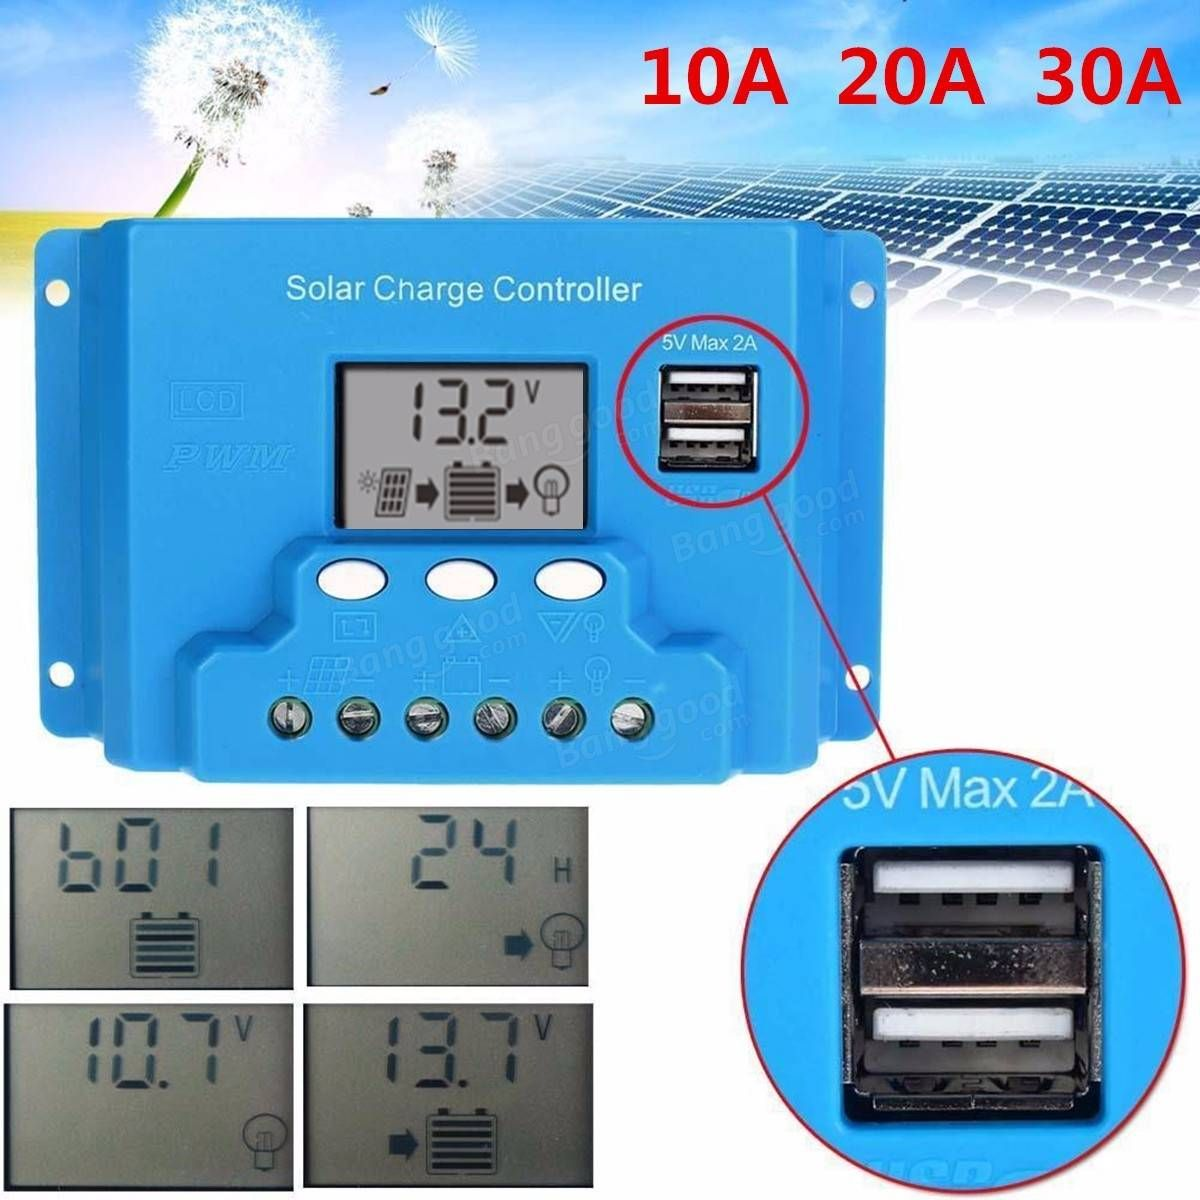 10a 20a 30a Lcd Pwm Solar Panel Charge Controller Battery Regulator 12v 24v With Dual Usb Electrical Equipment Supplies From Industrial Scientific On Banggo Dual Usb Solar Panels Solar